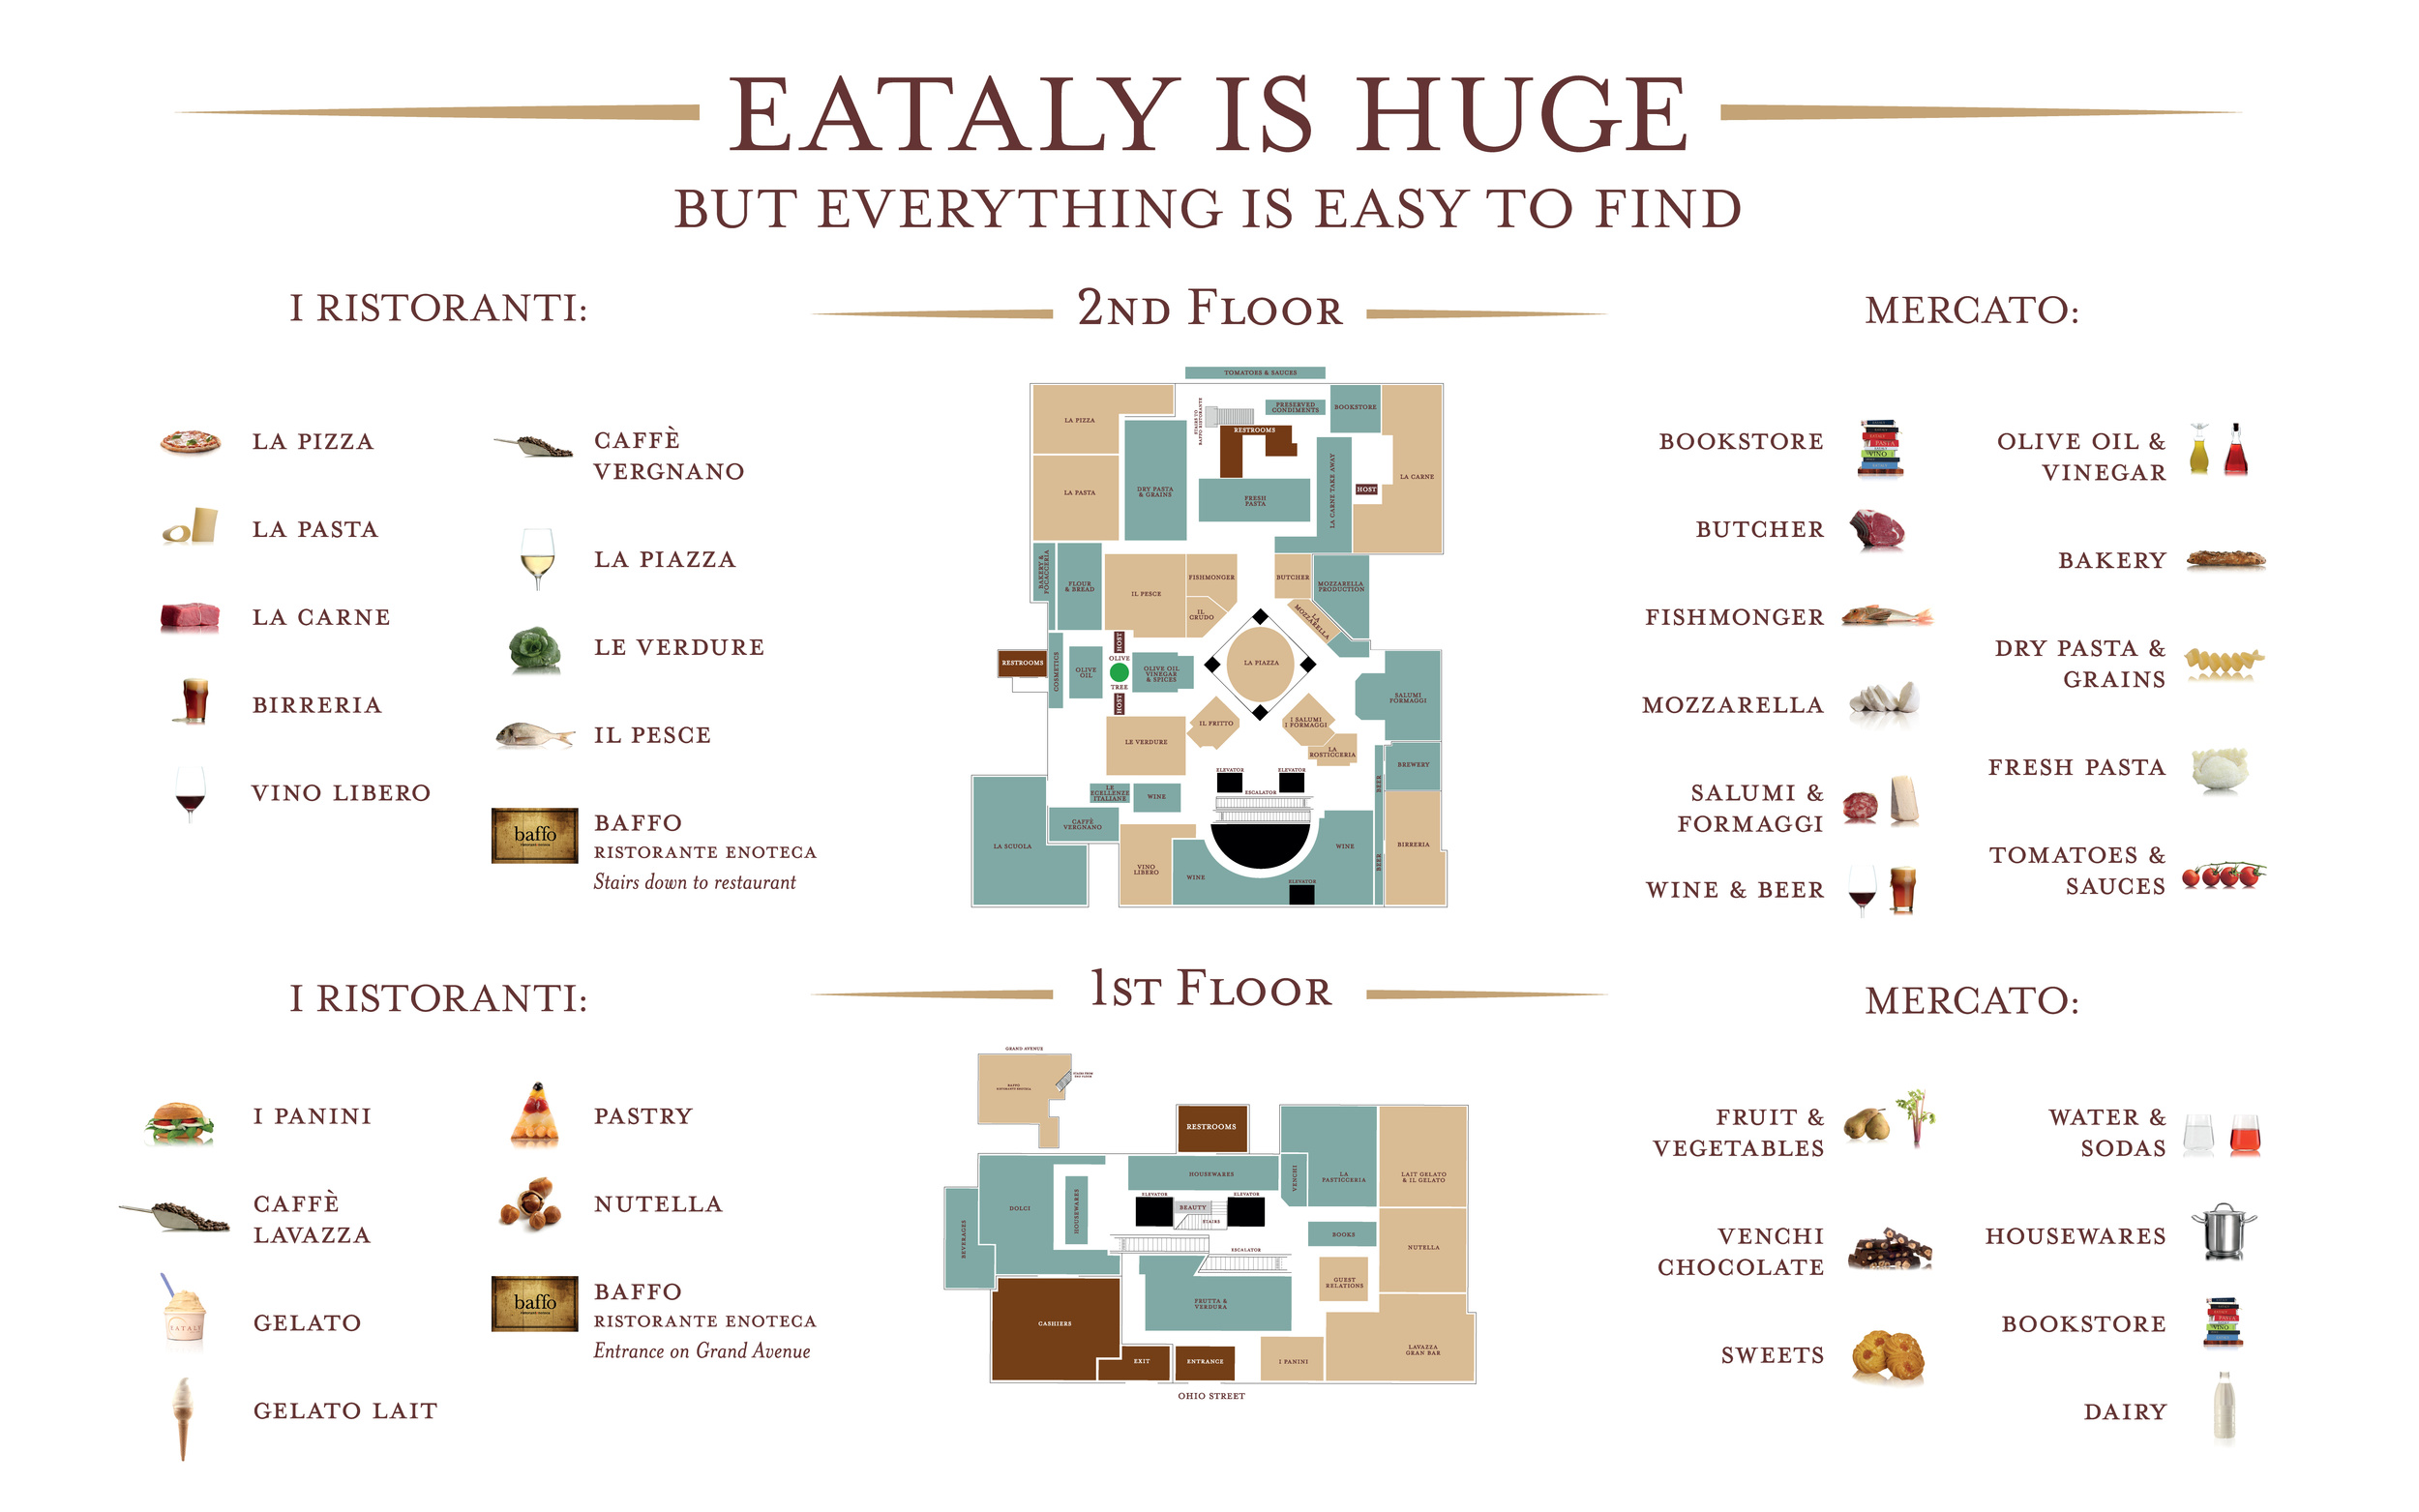 Floorplan of Chicago's Eataly. Click image to enlarge.